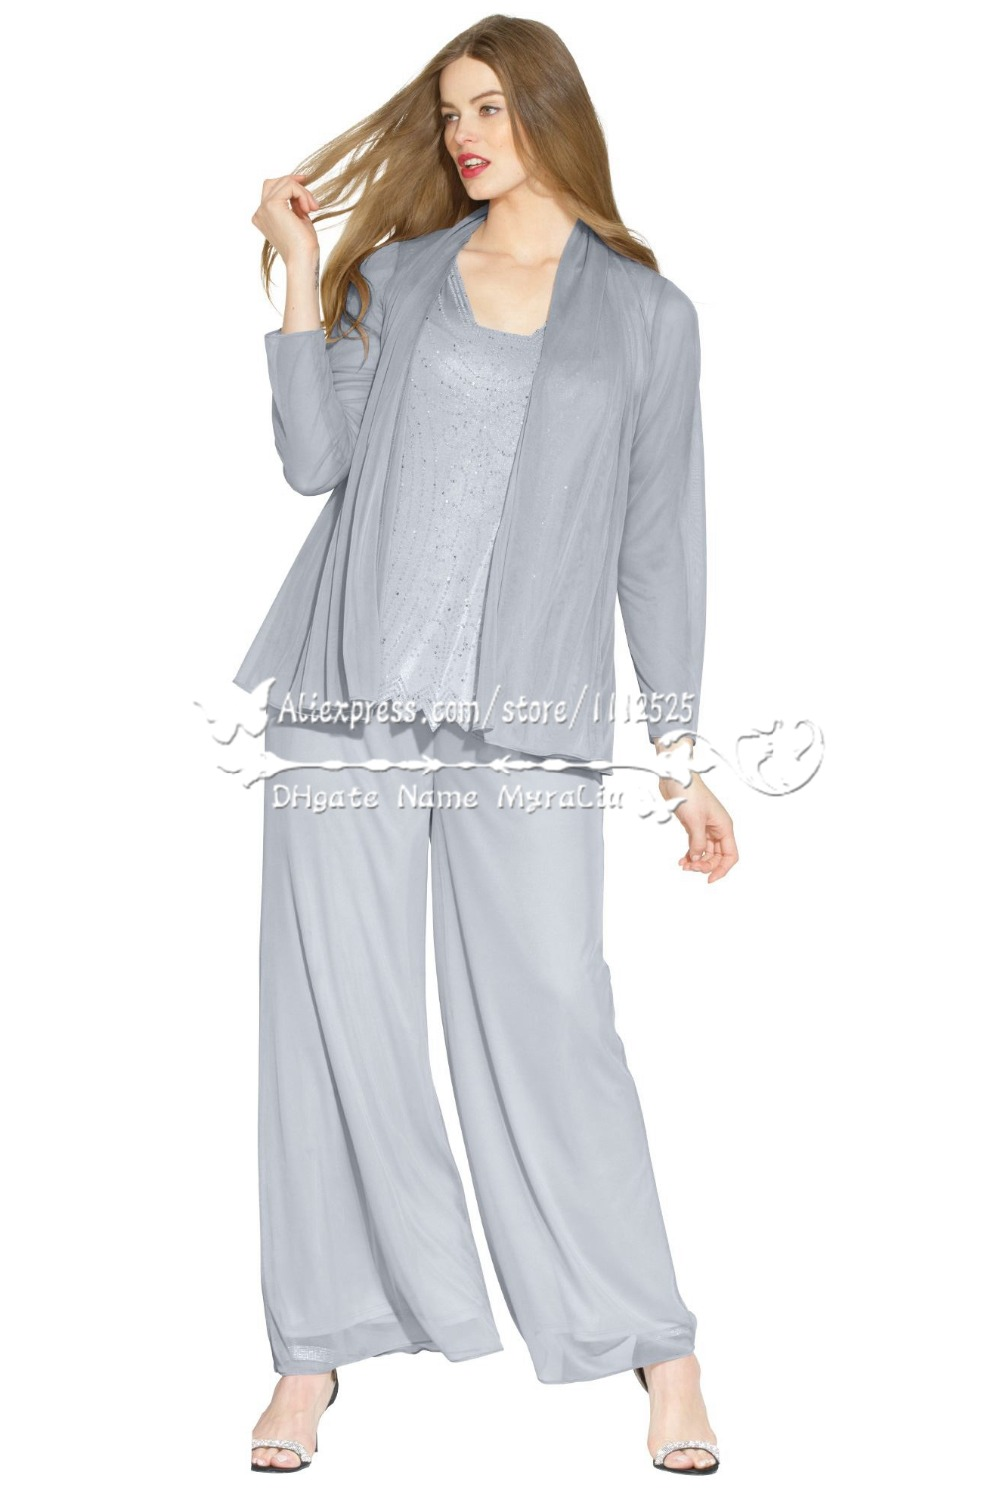 amp 1217 grey delicate beaded chiffon mother of the bride